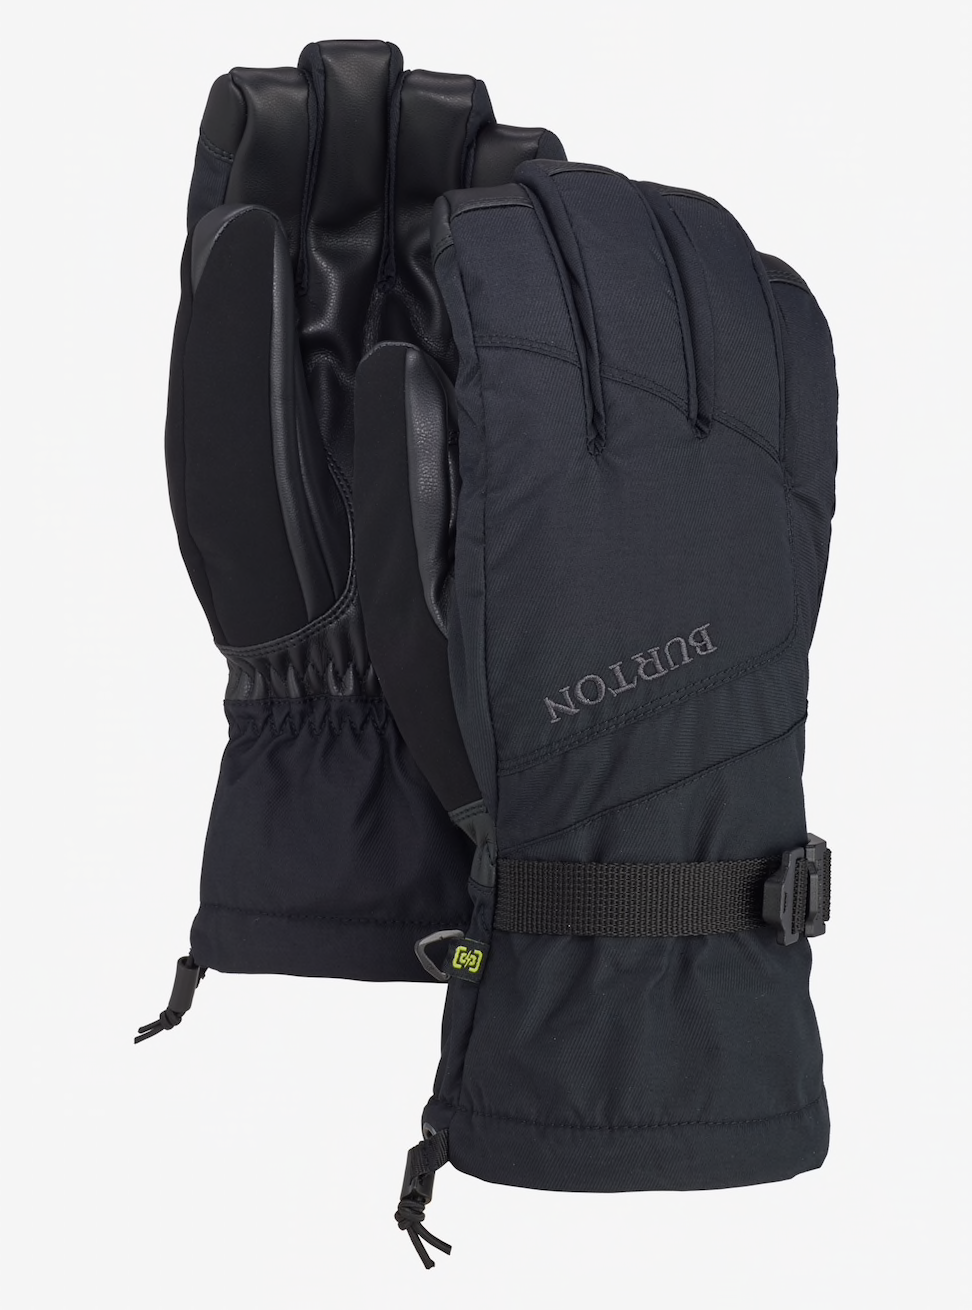 2019 Burton Profile Under Glove - Black